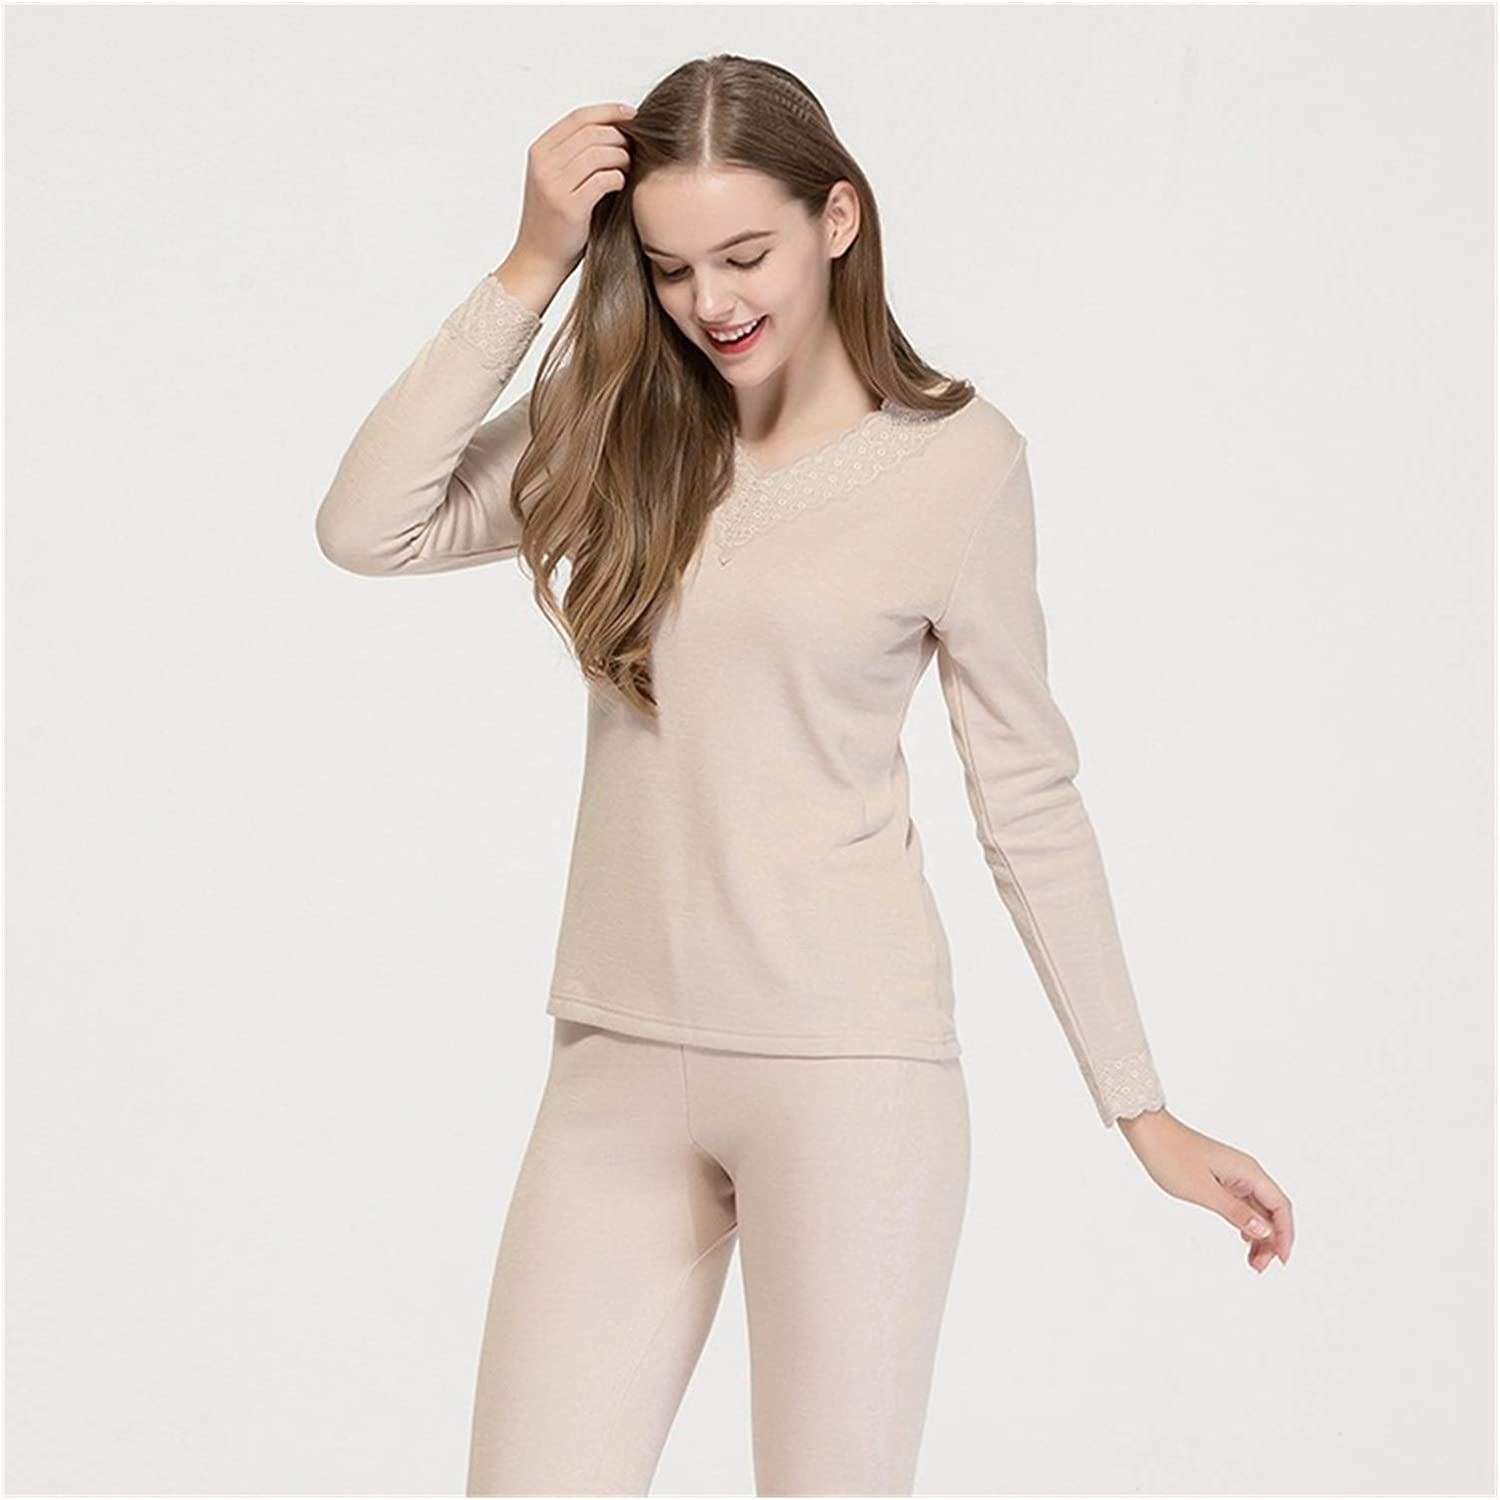 Glqwe Real Silk Pull-Down Thermal Underwear Set Women's Mulberry Silk Knitted V-Neck Plus Thick Pajamas for Women (Color : Beige, Size : Medium)